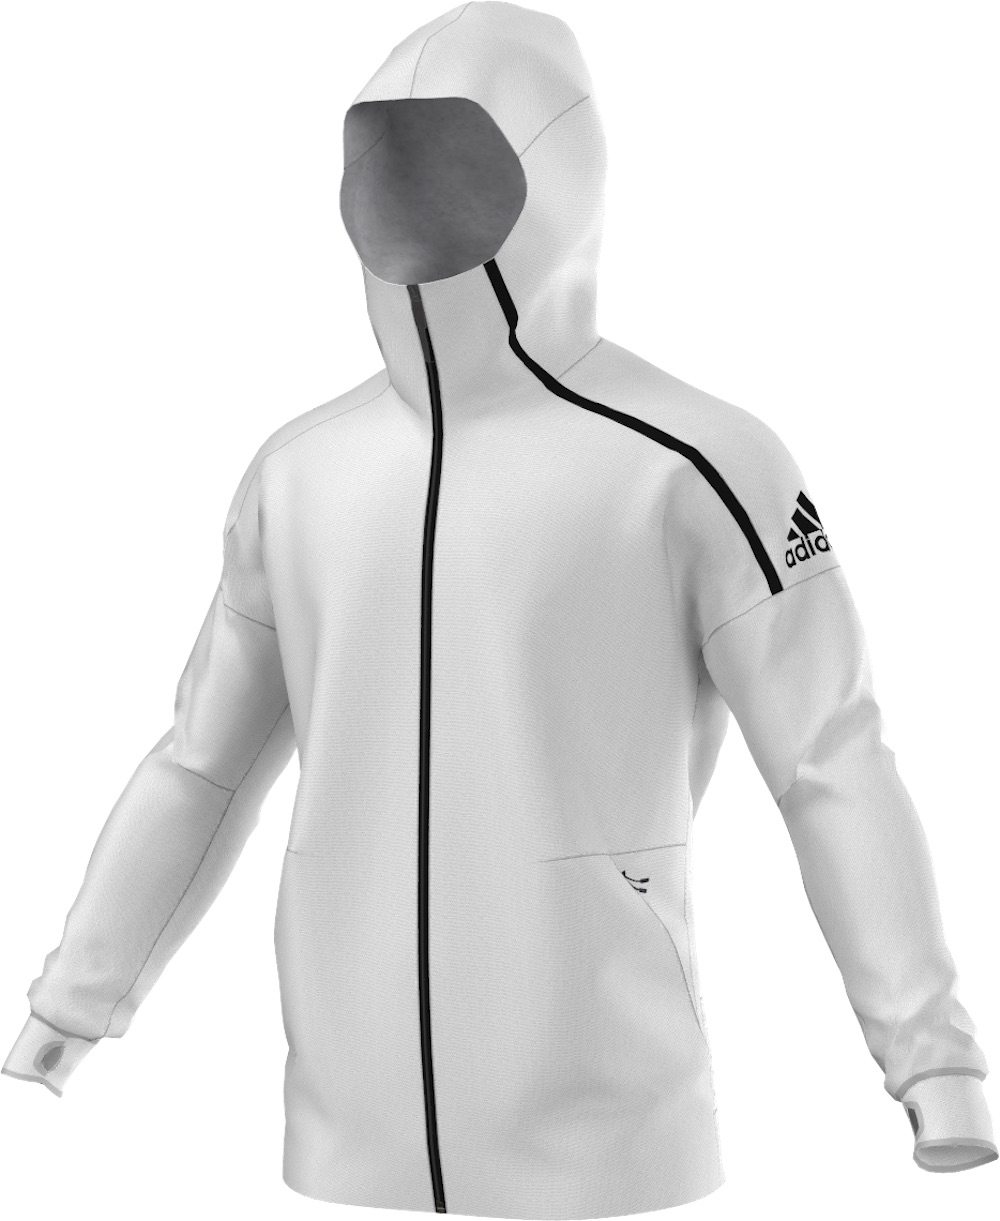 adidas zne homme blanche